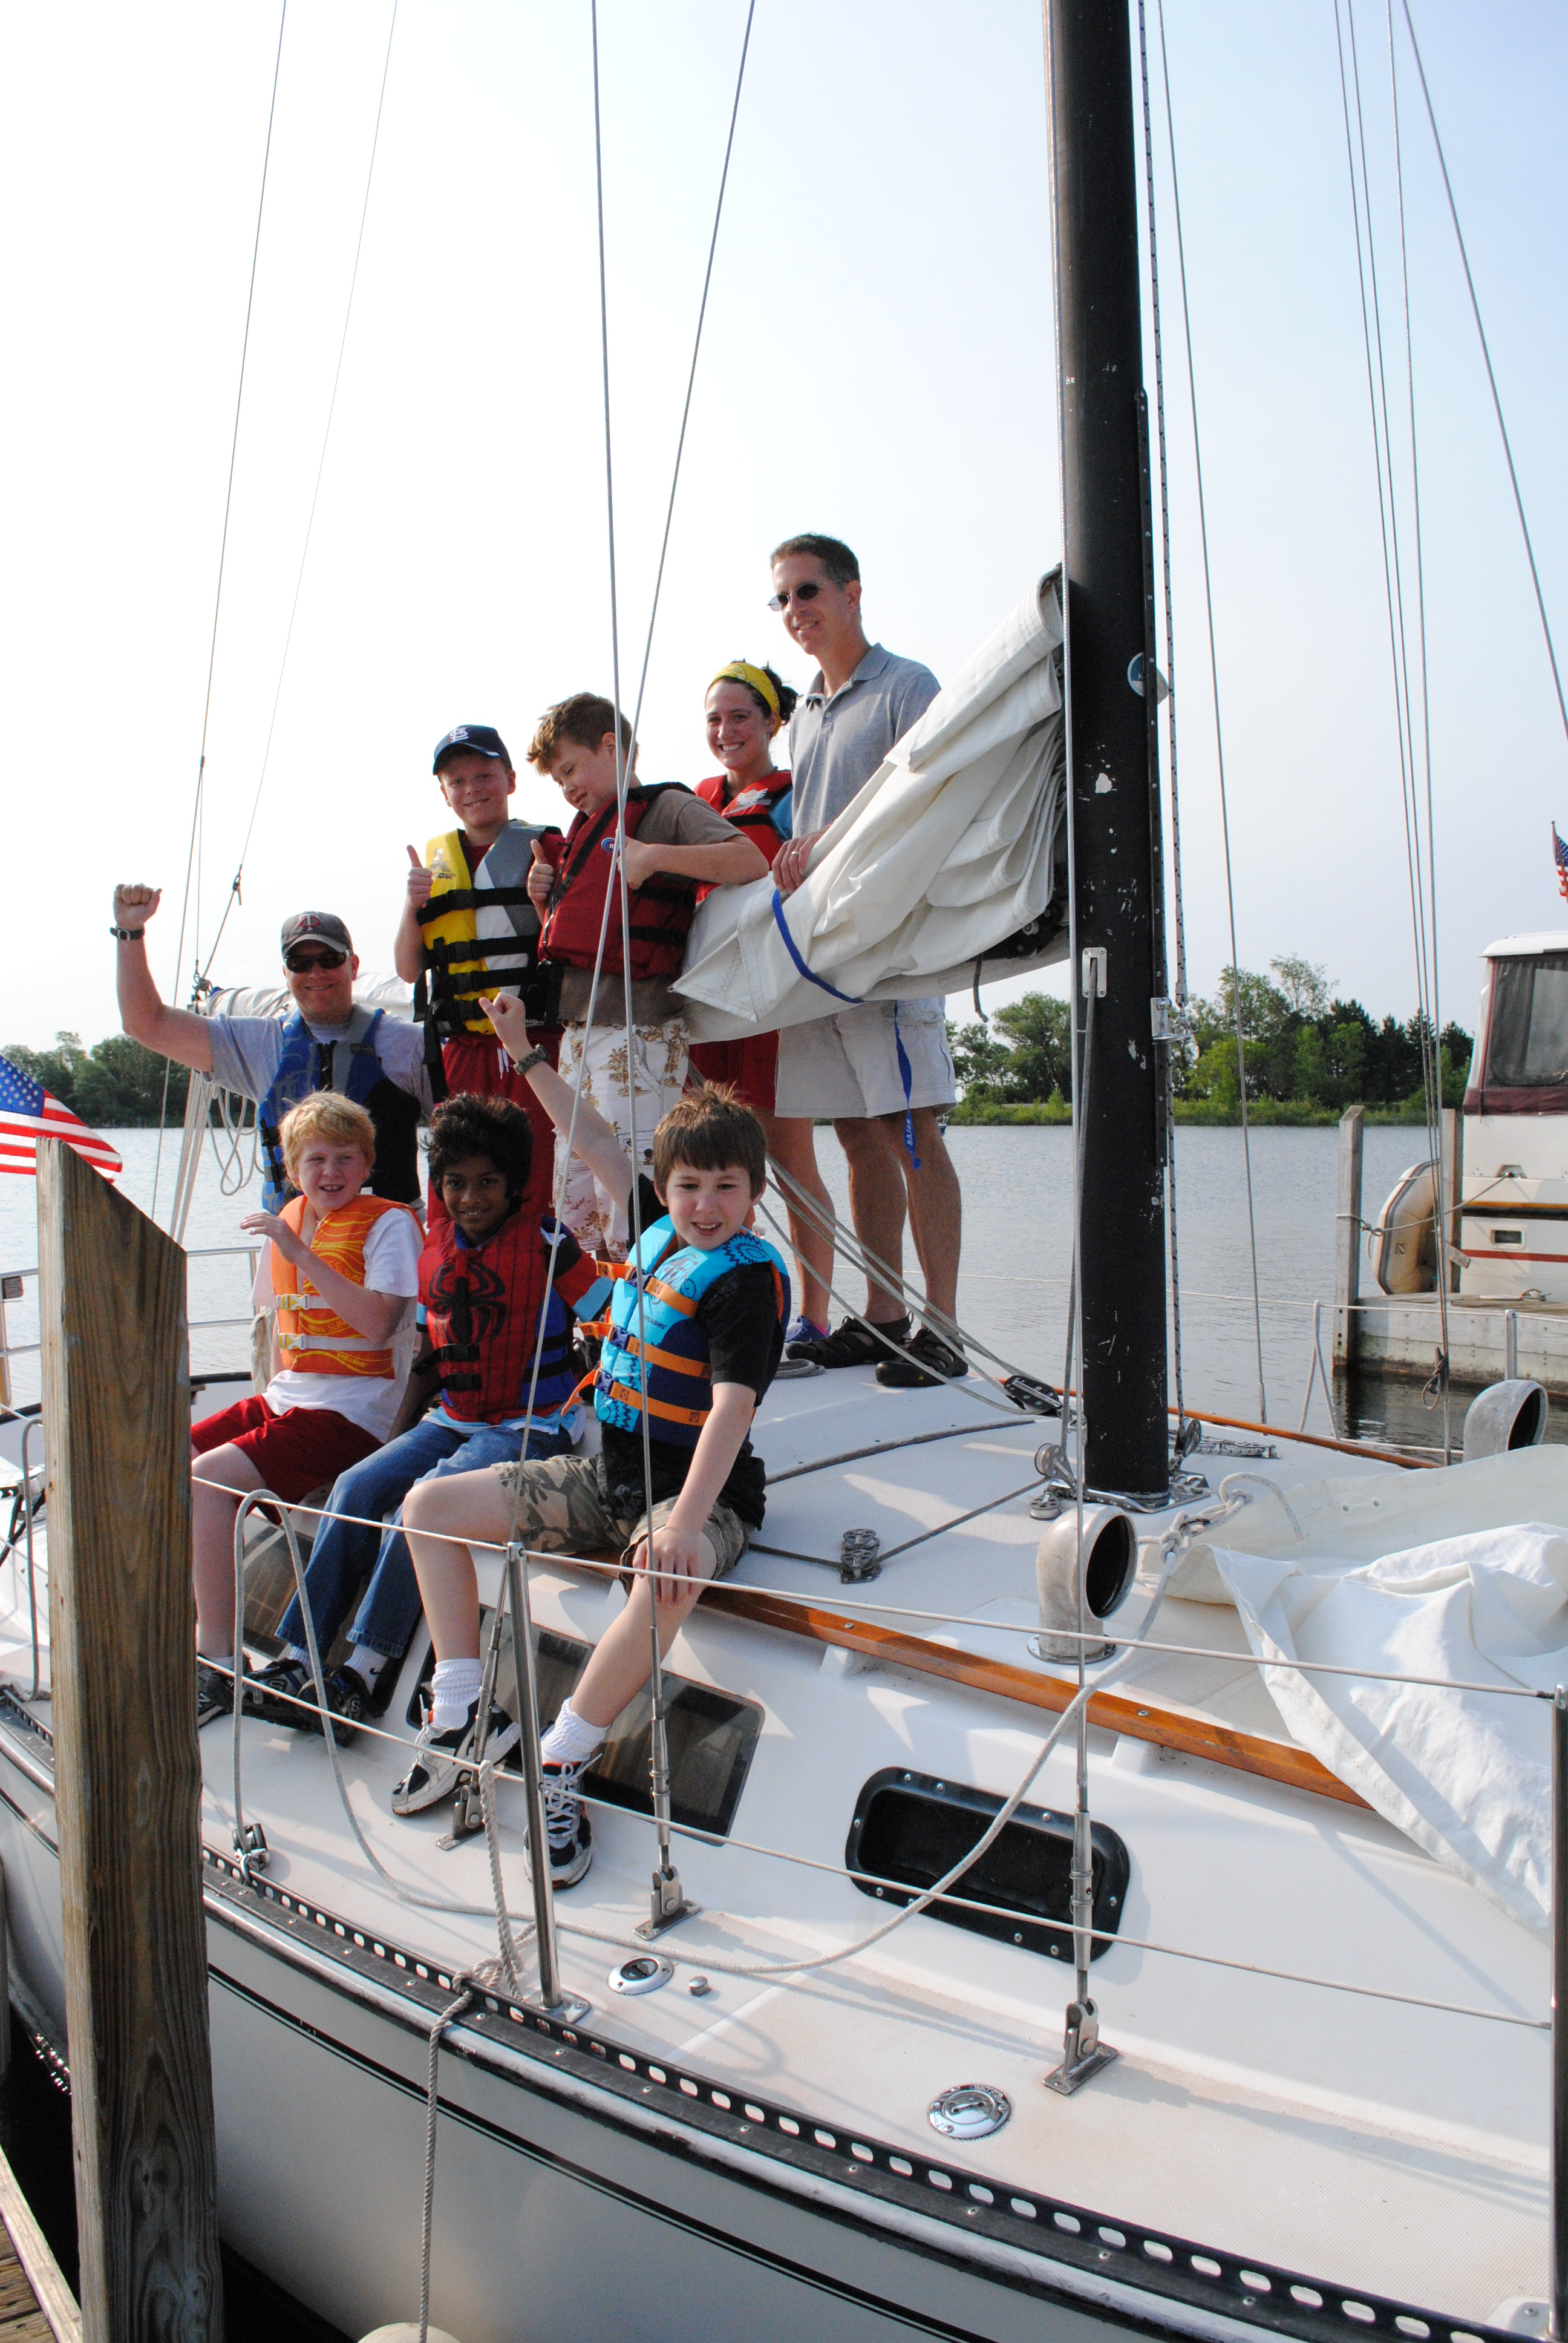 Kids, Forest ranger and Y staff smile and wave from sailboat.